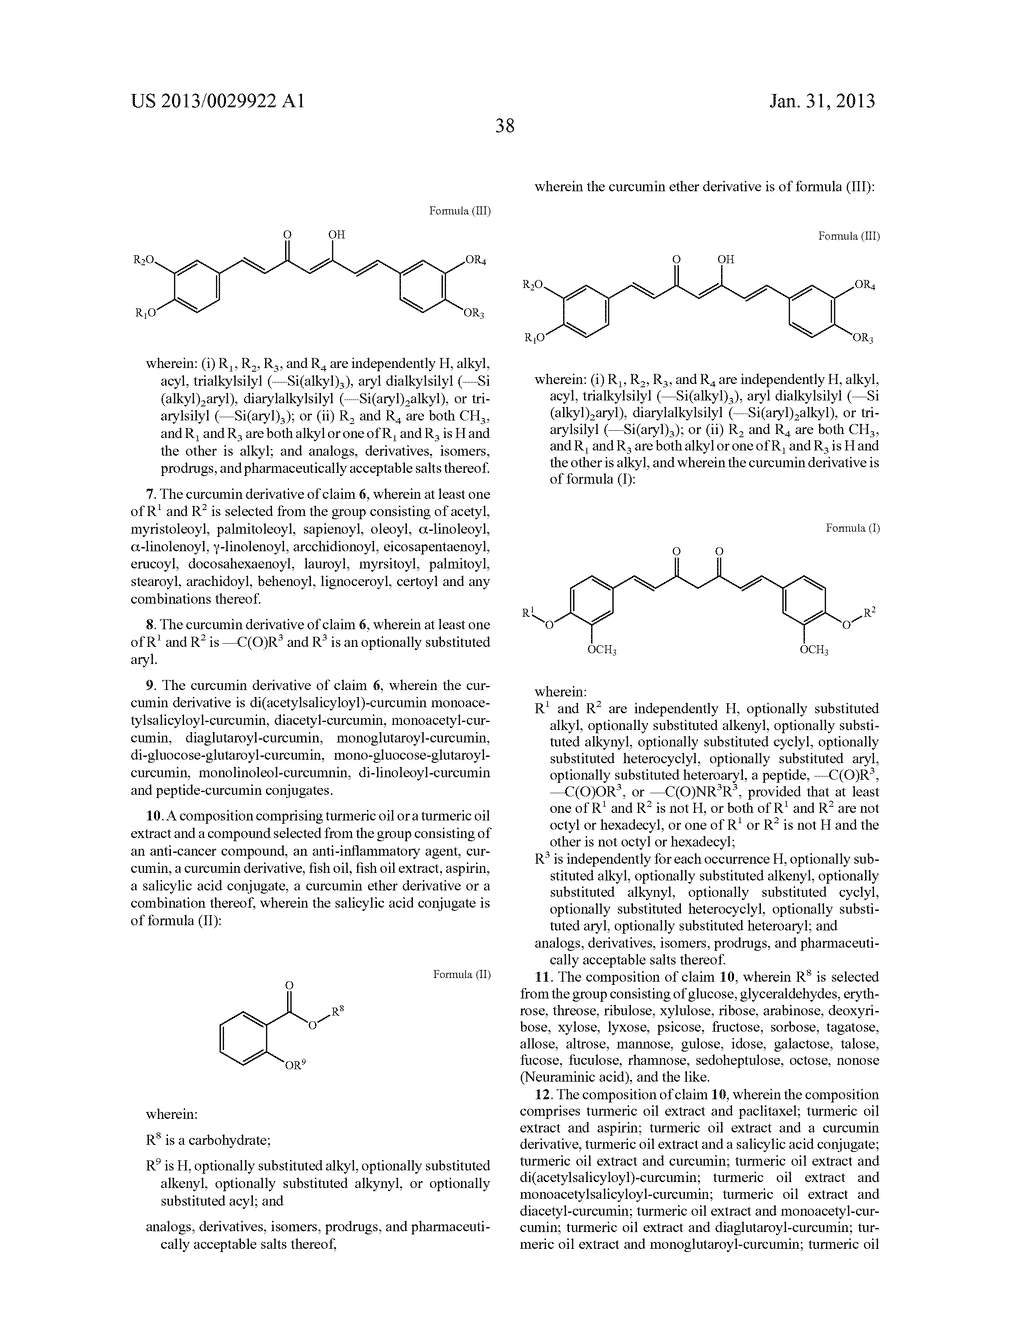 FORMULATIONS FROM NATURAL PRODUCTS, TURMERIC, PACLITAXEL, AND ASPIRIN - diagram, schematic, and image 92